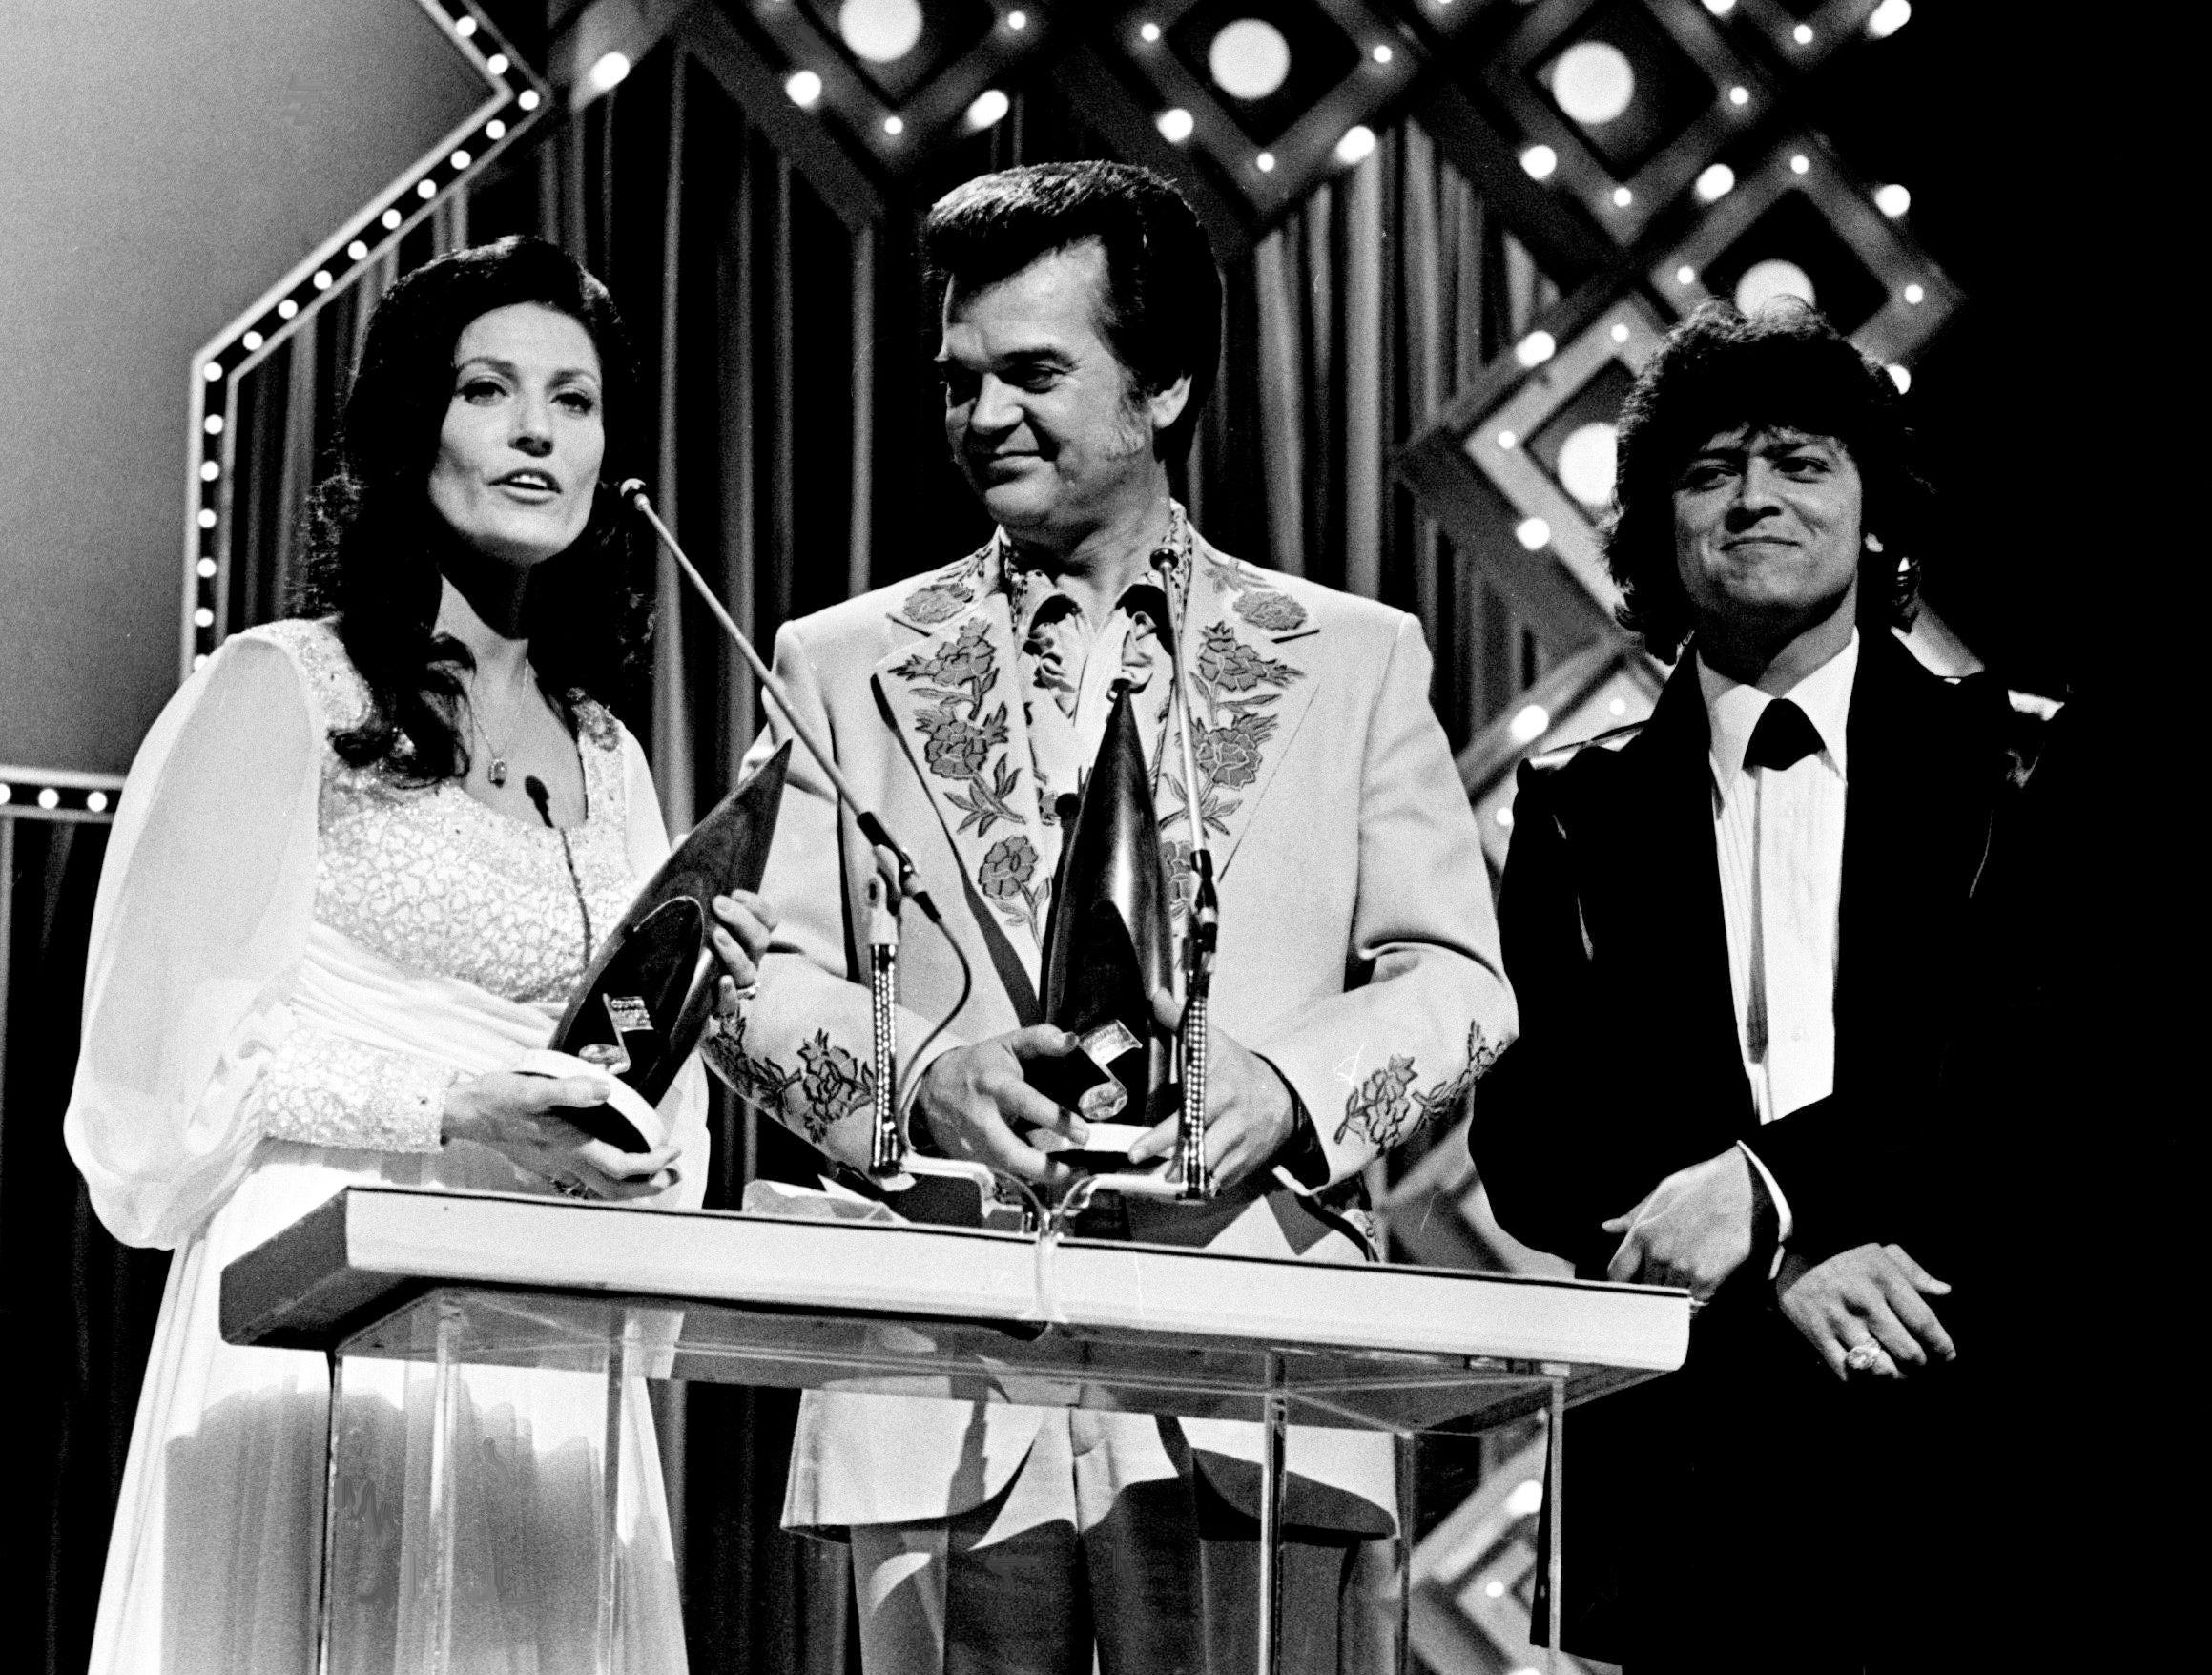 Loretta Lynn, left, and Conway Twitty win the Vocal Duo of the Year award at the nationally televised CMA Awards show Oct. 13, 1975, as presenter Johnny Rodriguez, right, looks on.